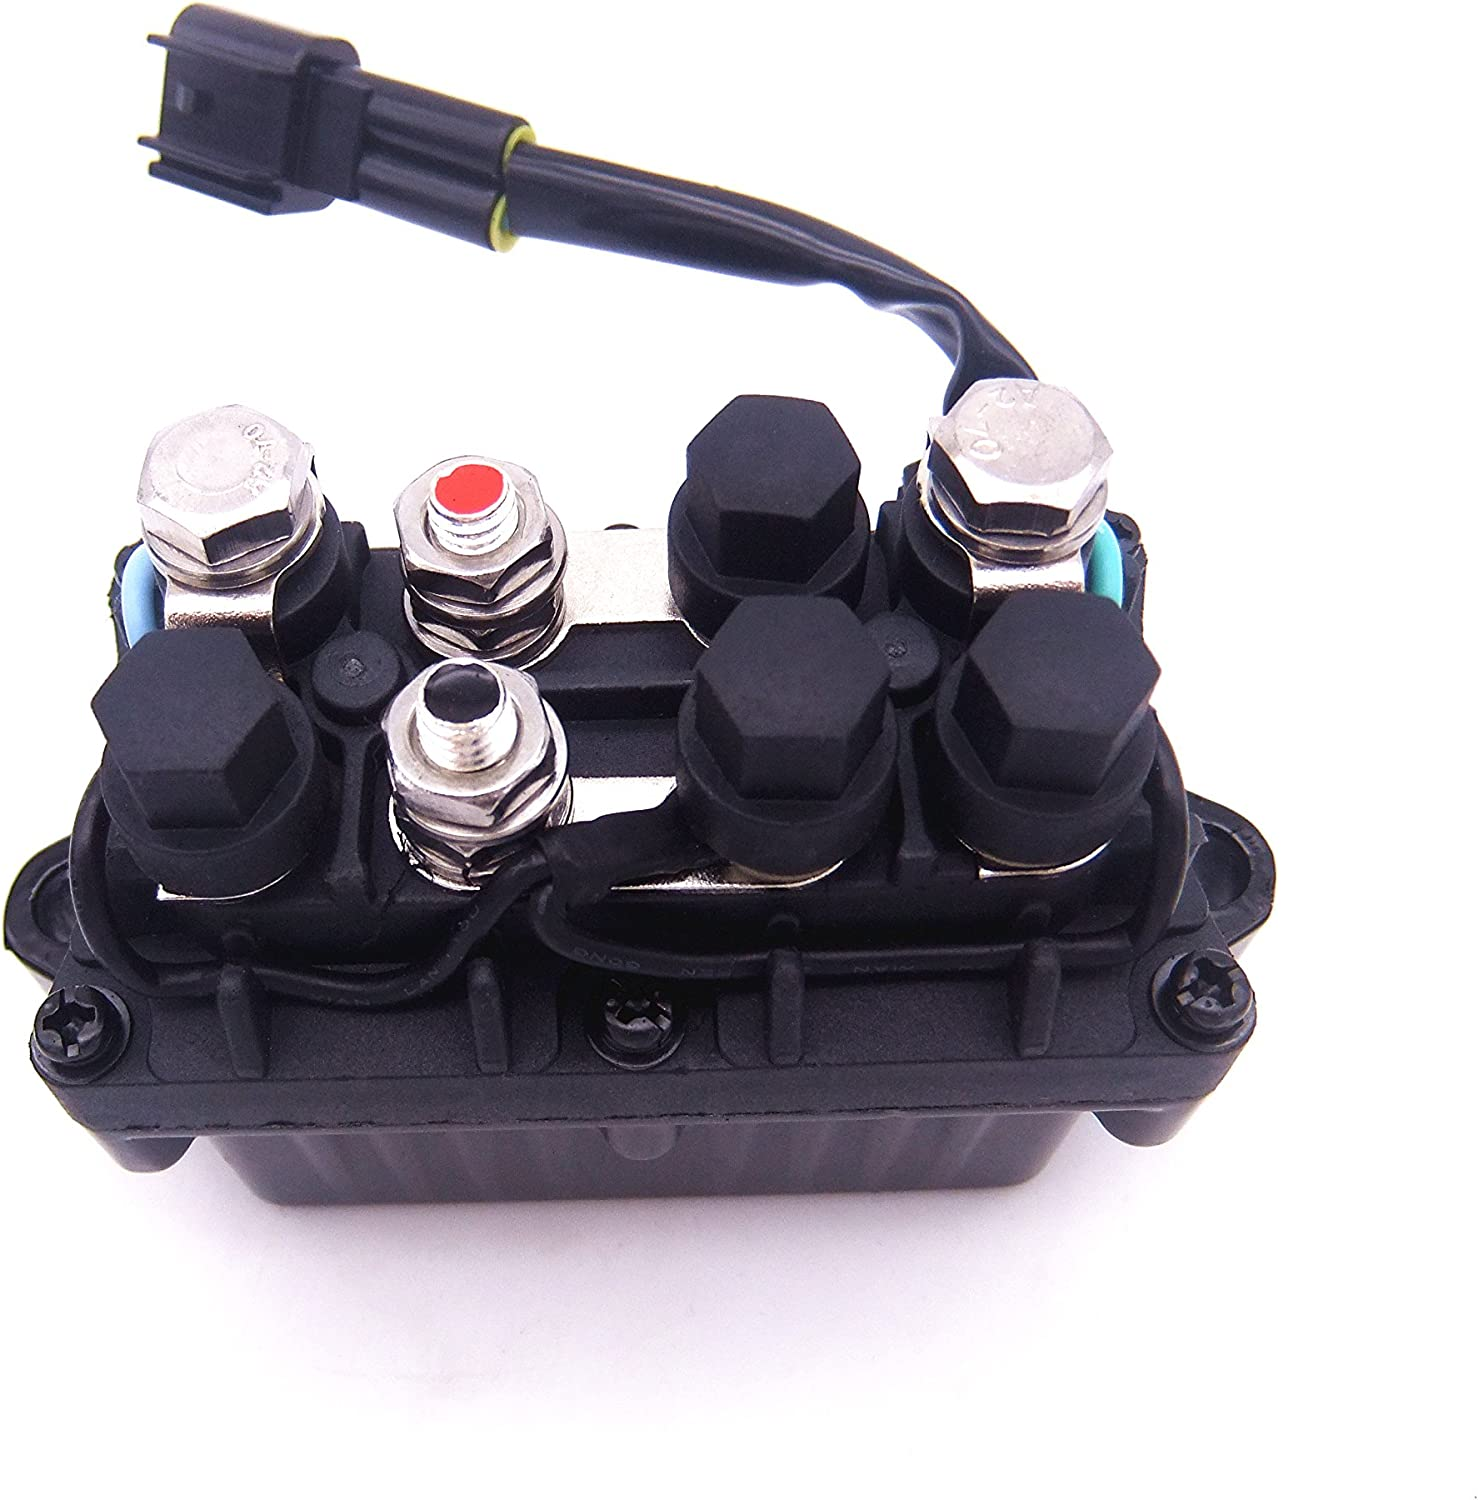 Relay Assy 63P-81950-00-00 for Yamaha Outboard Motors 4 Stroke Engine F 20HP - 250HP